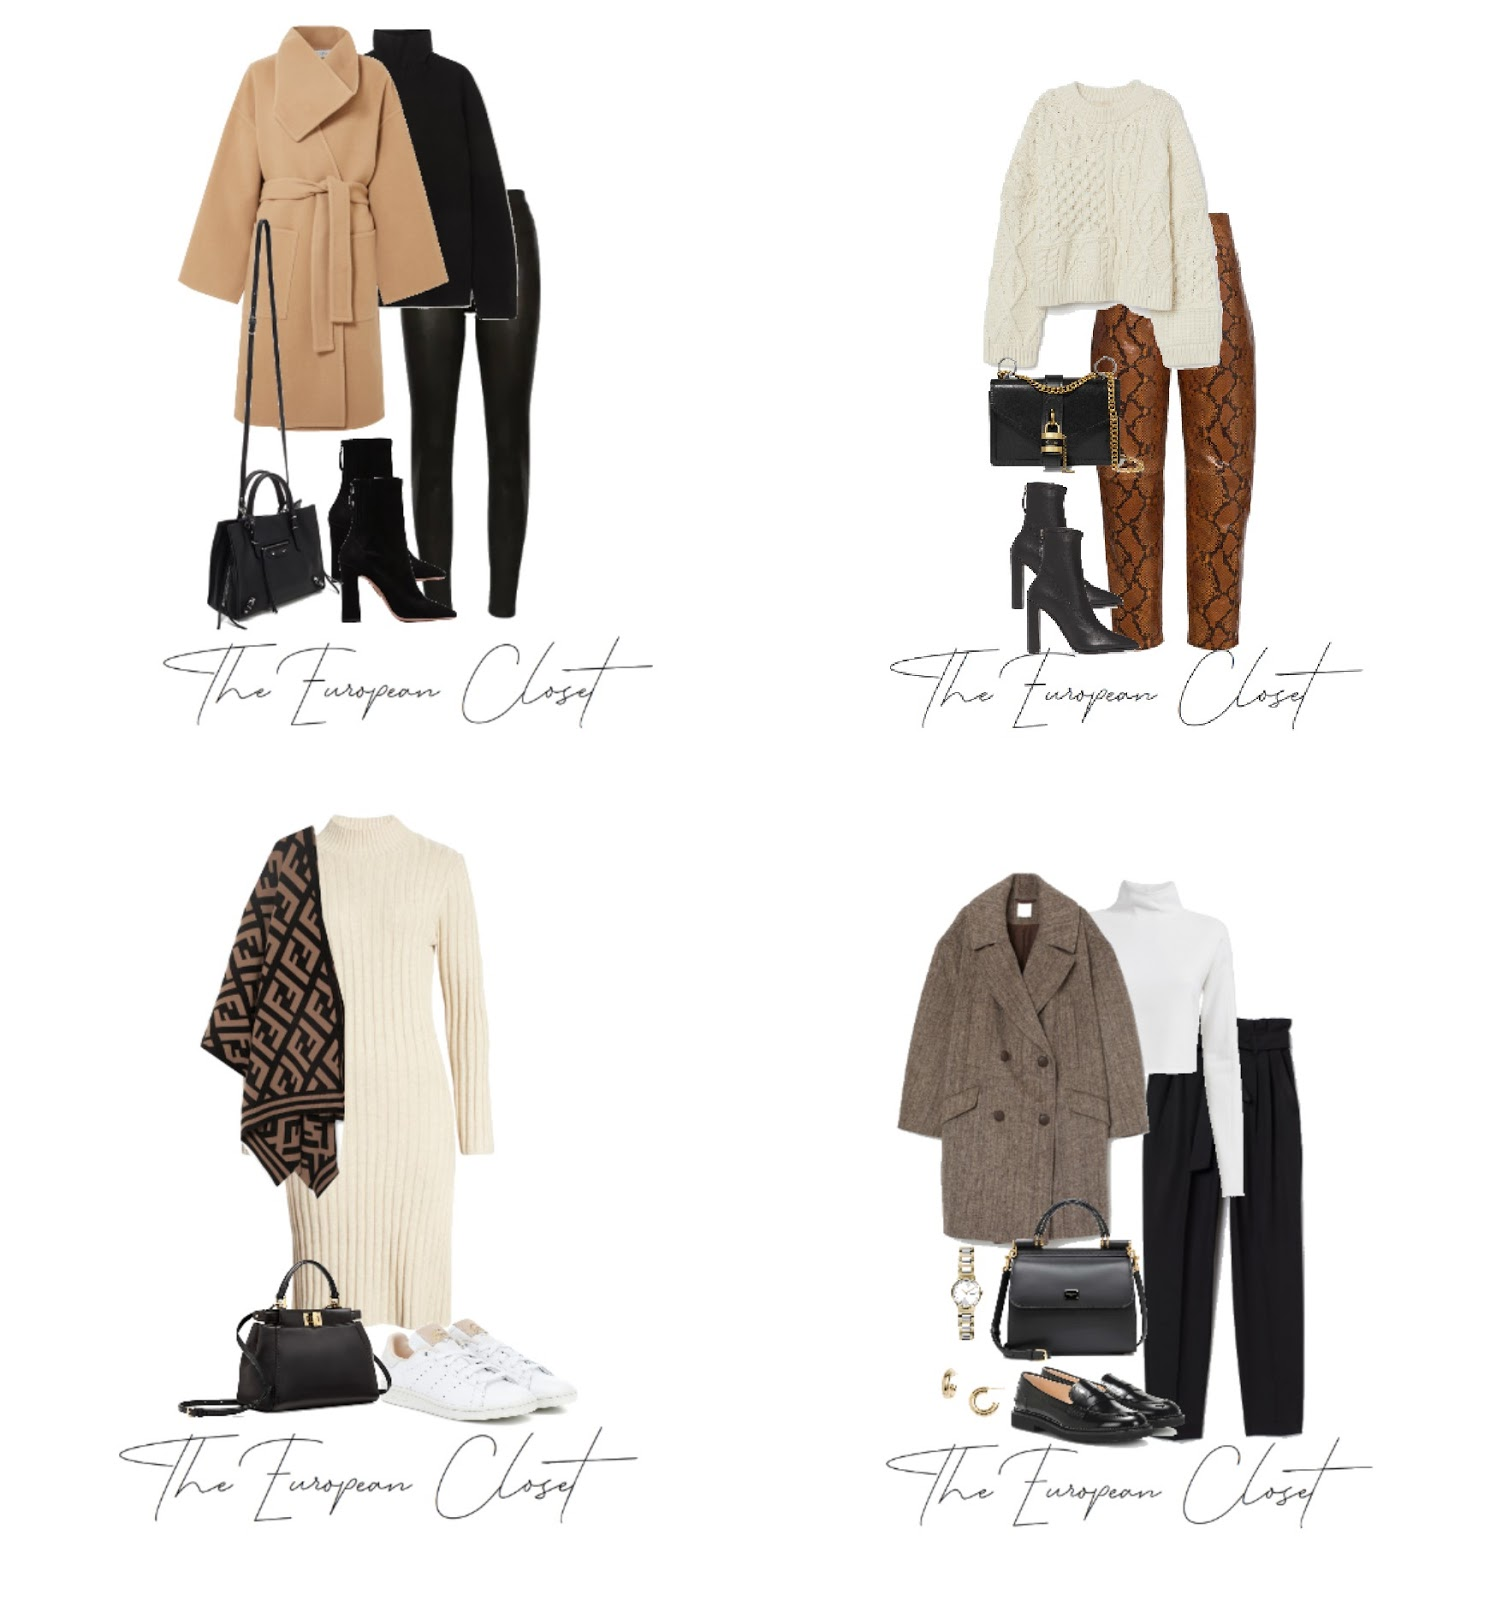 Cold weather has officially arrived and with it also comes the need to wear warmer and cozier garments. I know a lot of people prioritize being cozy and warm during winter instead of focusing on looking on-trend and fashionable, but what if I told you can be stylish AND cozy at the same time?  #winterfashion #fashion #style